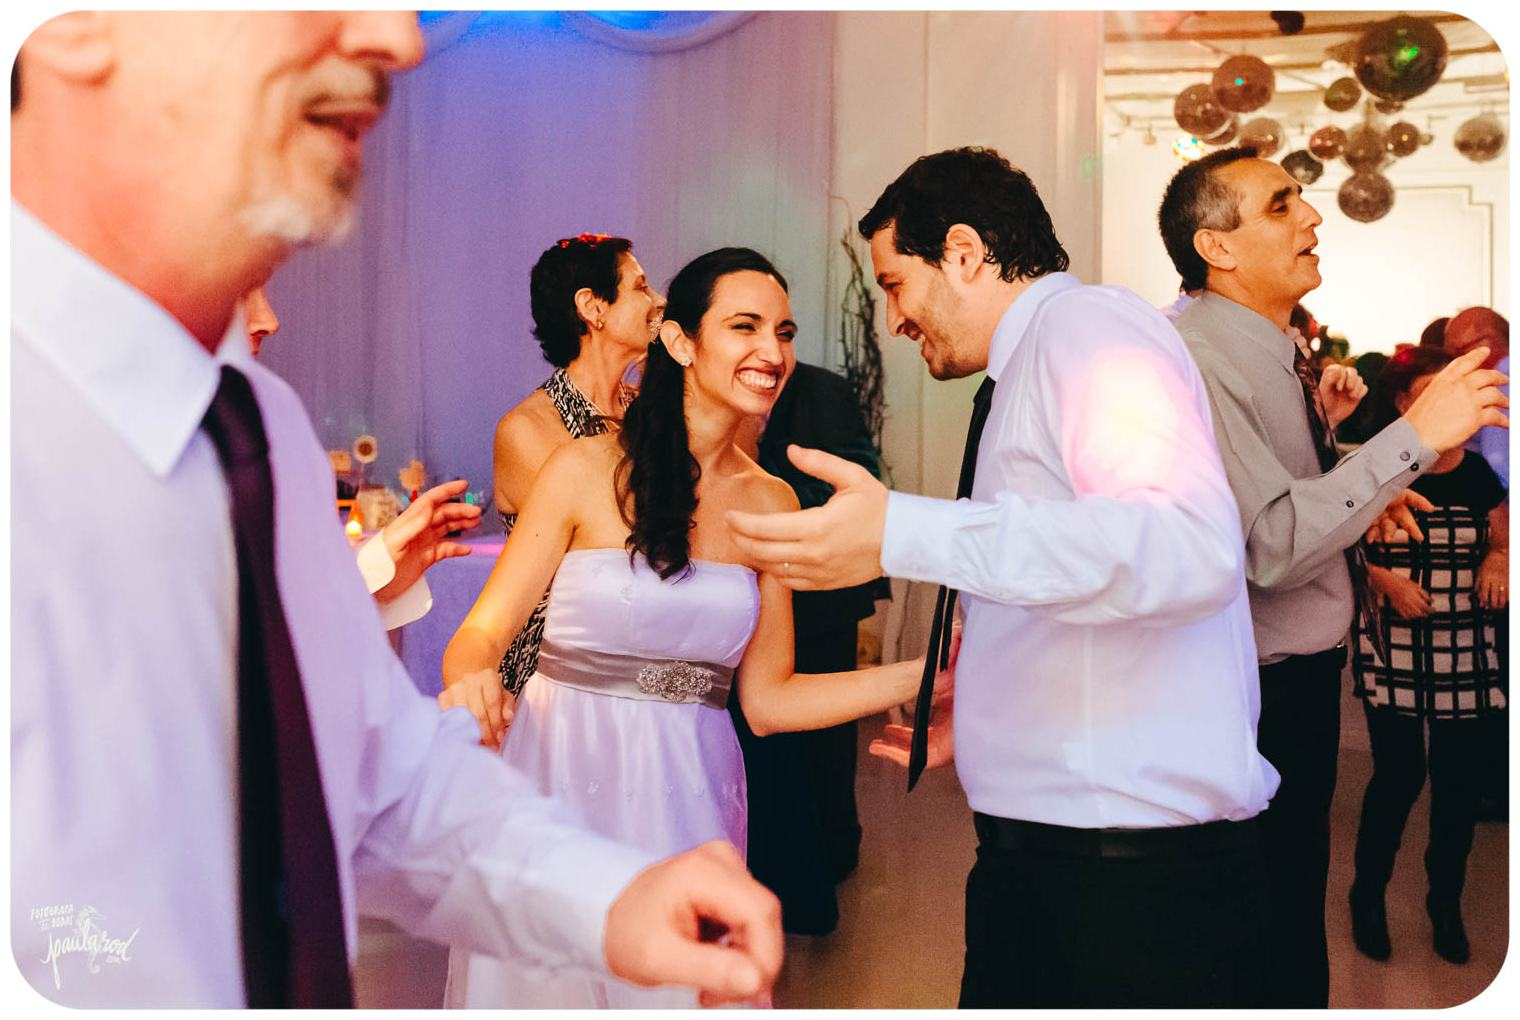 fotografia-documental-de-bodas-8.jpg